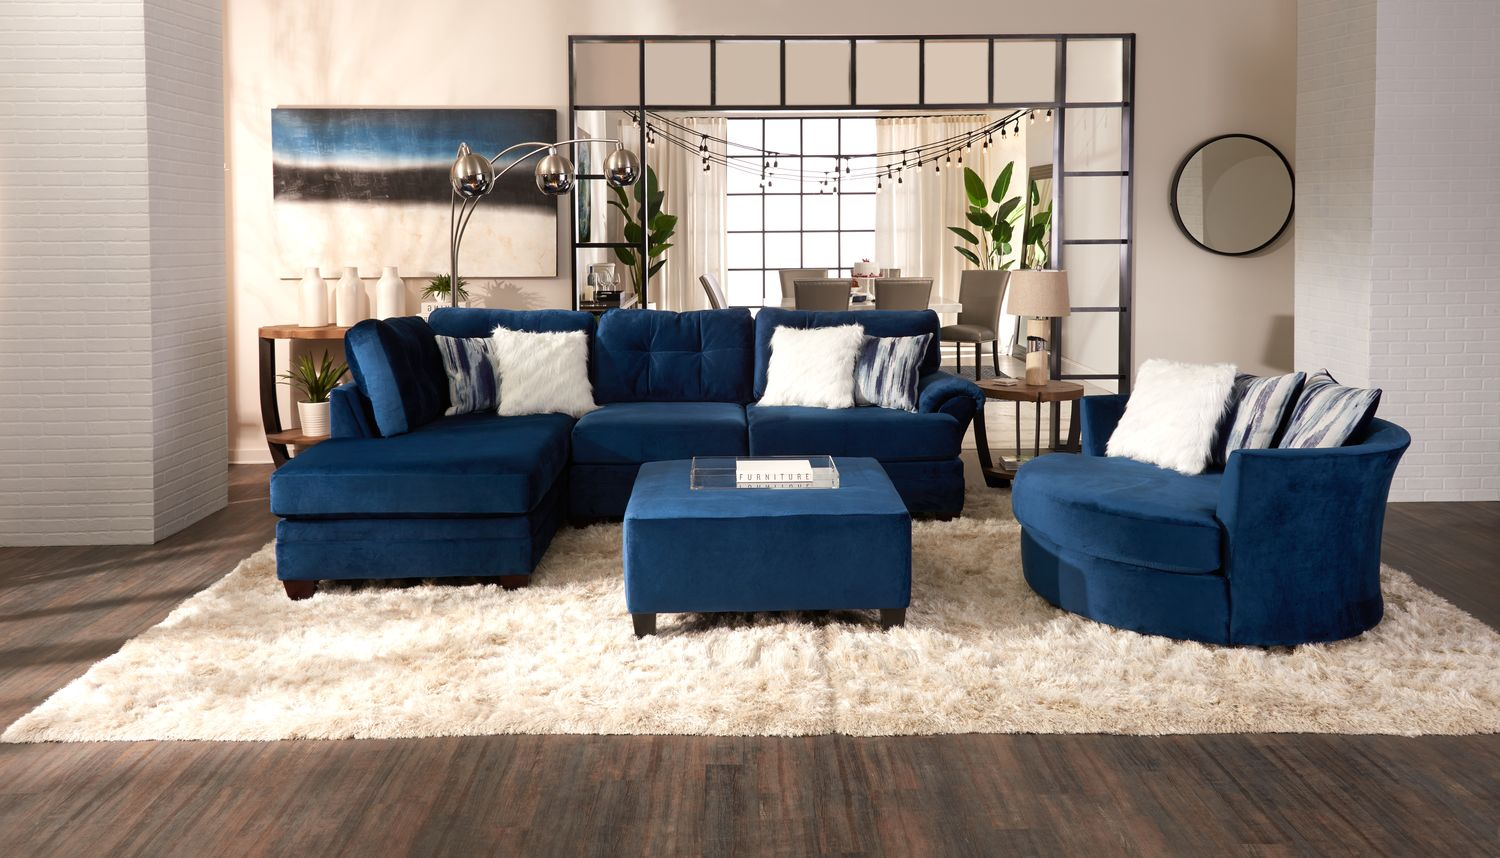 You will find all your customer care faq's here: Cordelle 2-Piece Sectional with Chaise | Value City Furniture